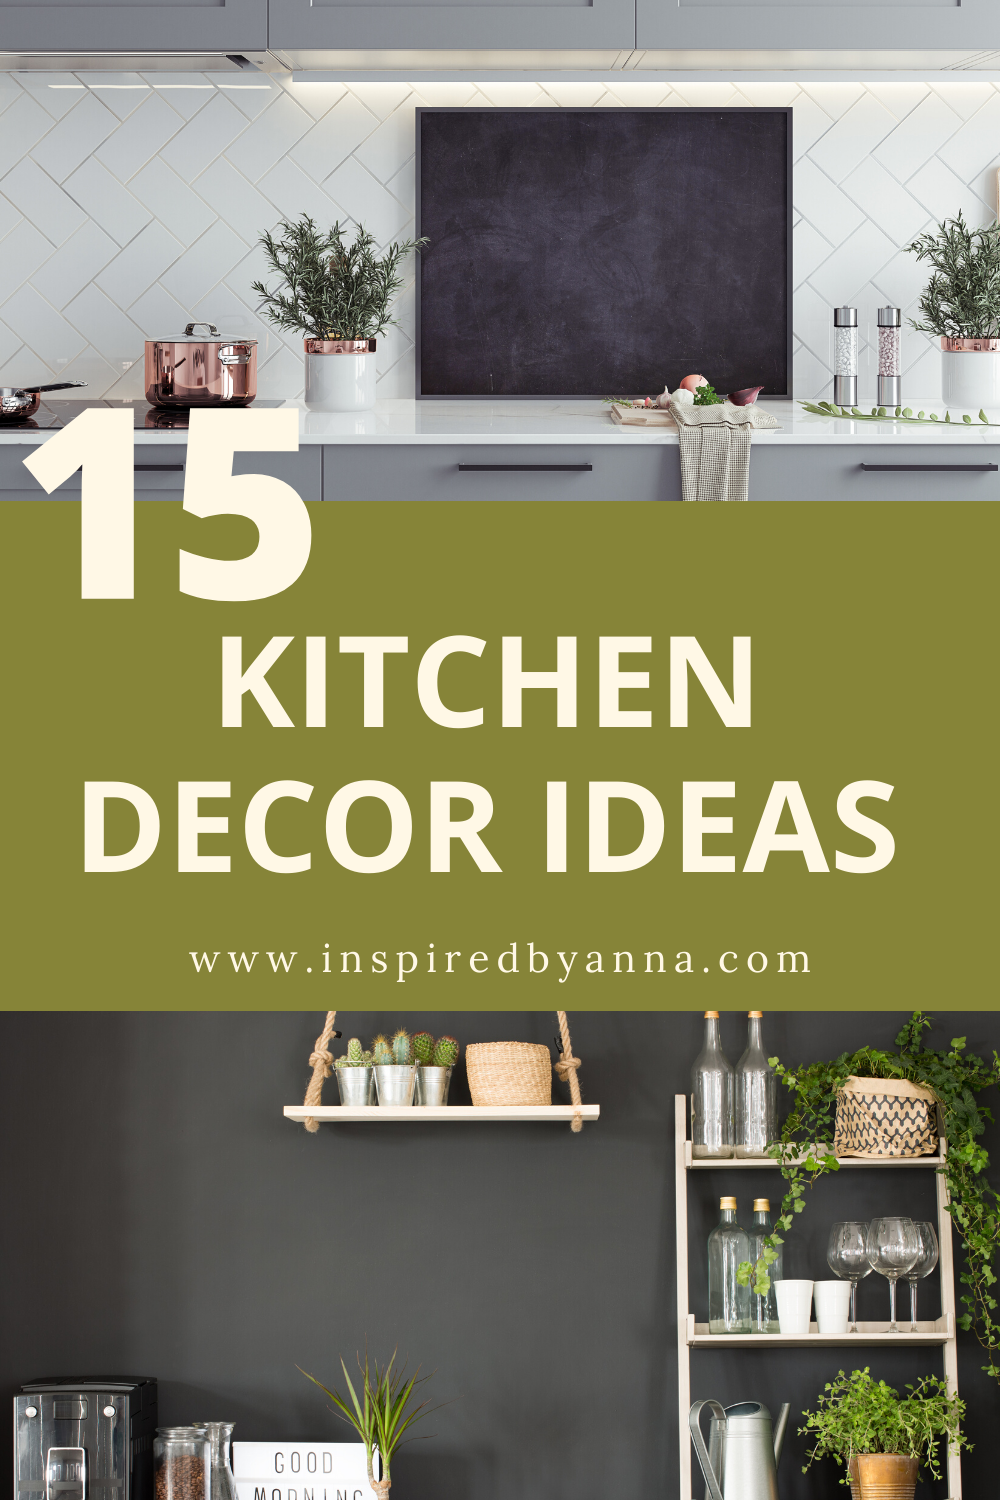 15 gorgeous and simple decor ideas for your kitchen.  kitchen ideas| kitchen decor| kitchen decorating ideas| kitchen decor apartment  #kitchendecor #kitchendecoratingideas